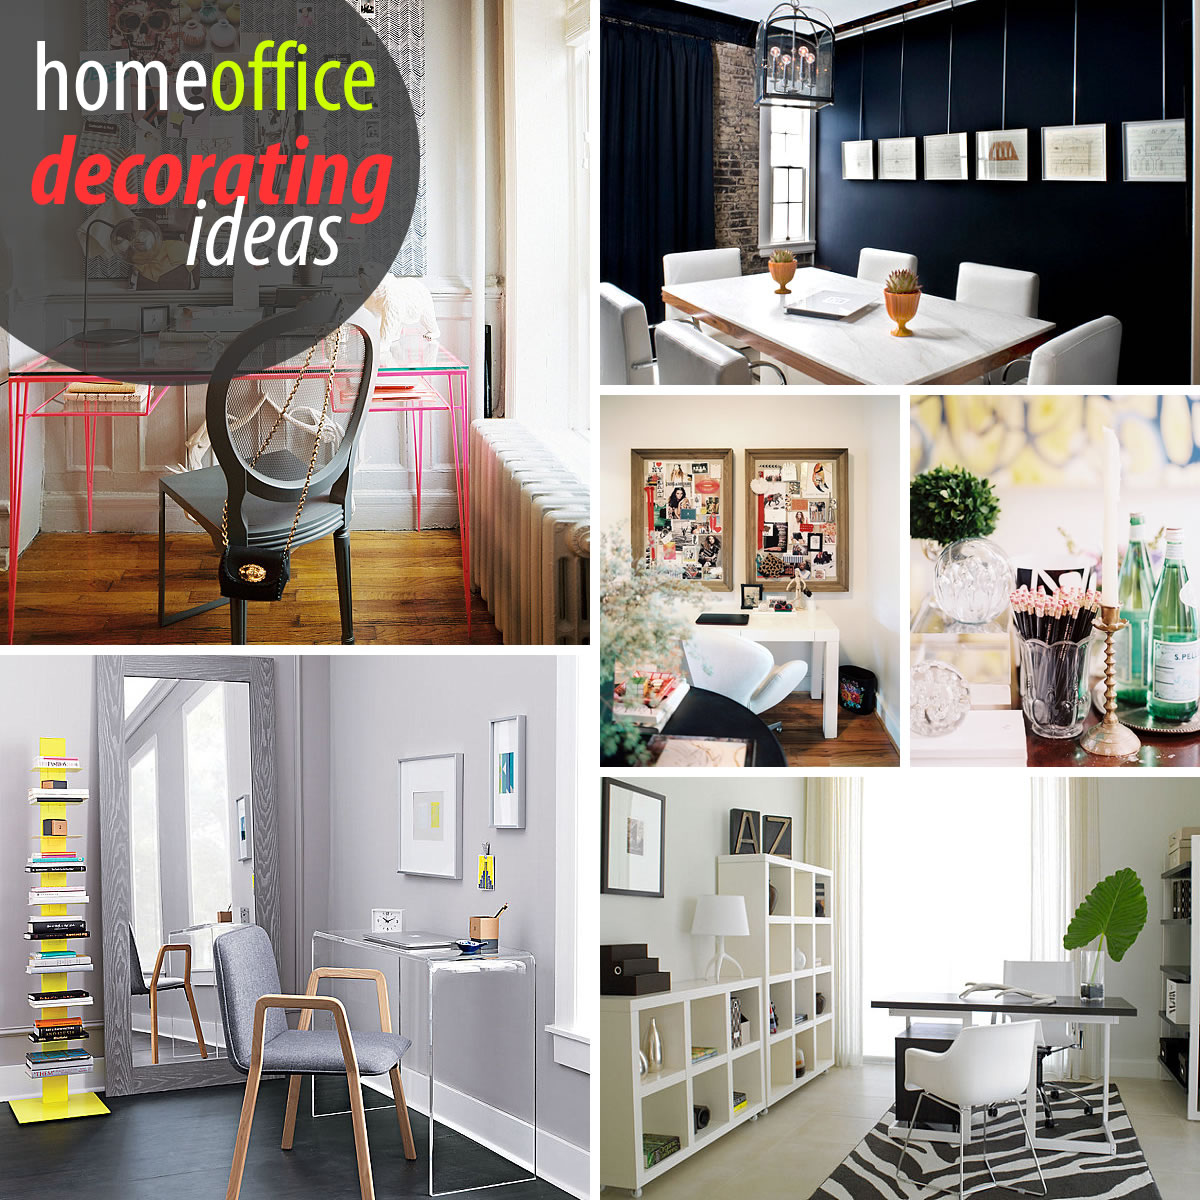 Creative home office decorating ideas for Unusual home decor ideas